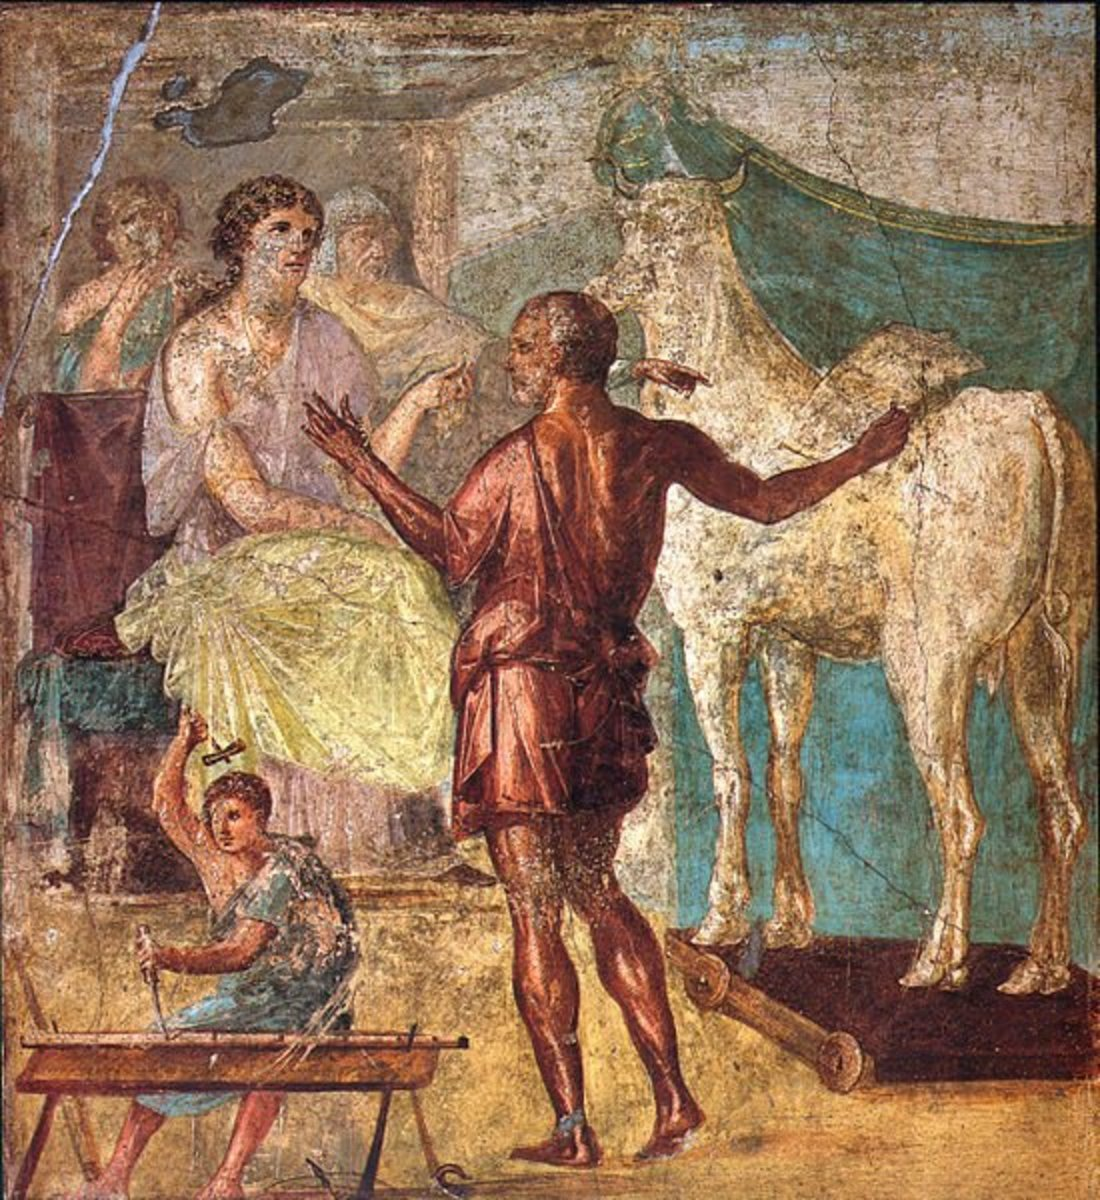 Daedalus, Pasiphae and wooden cow. Roman fresco from the northern wall of the triclinium in the Casa dei Vettii (VI 15,1) in Pompeii. PD-life-70